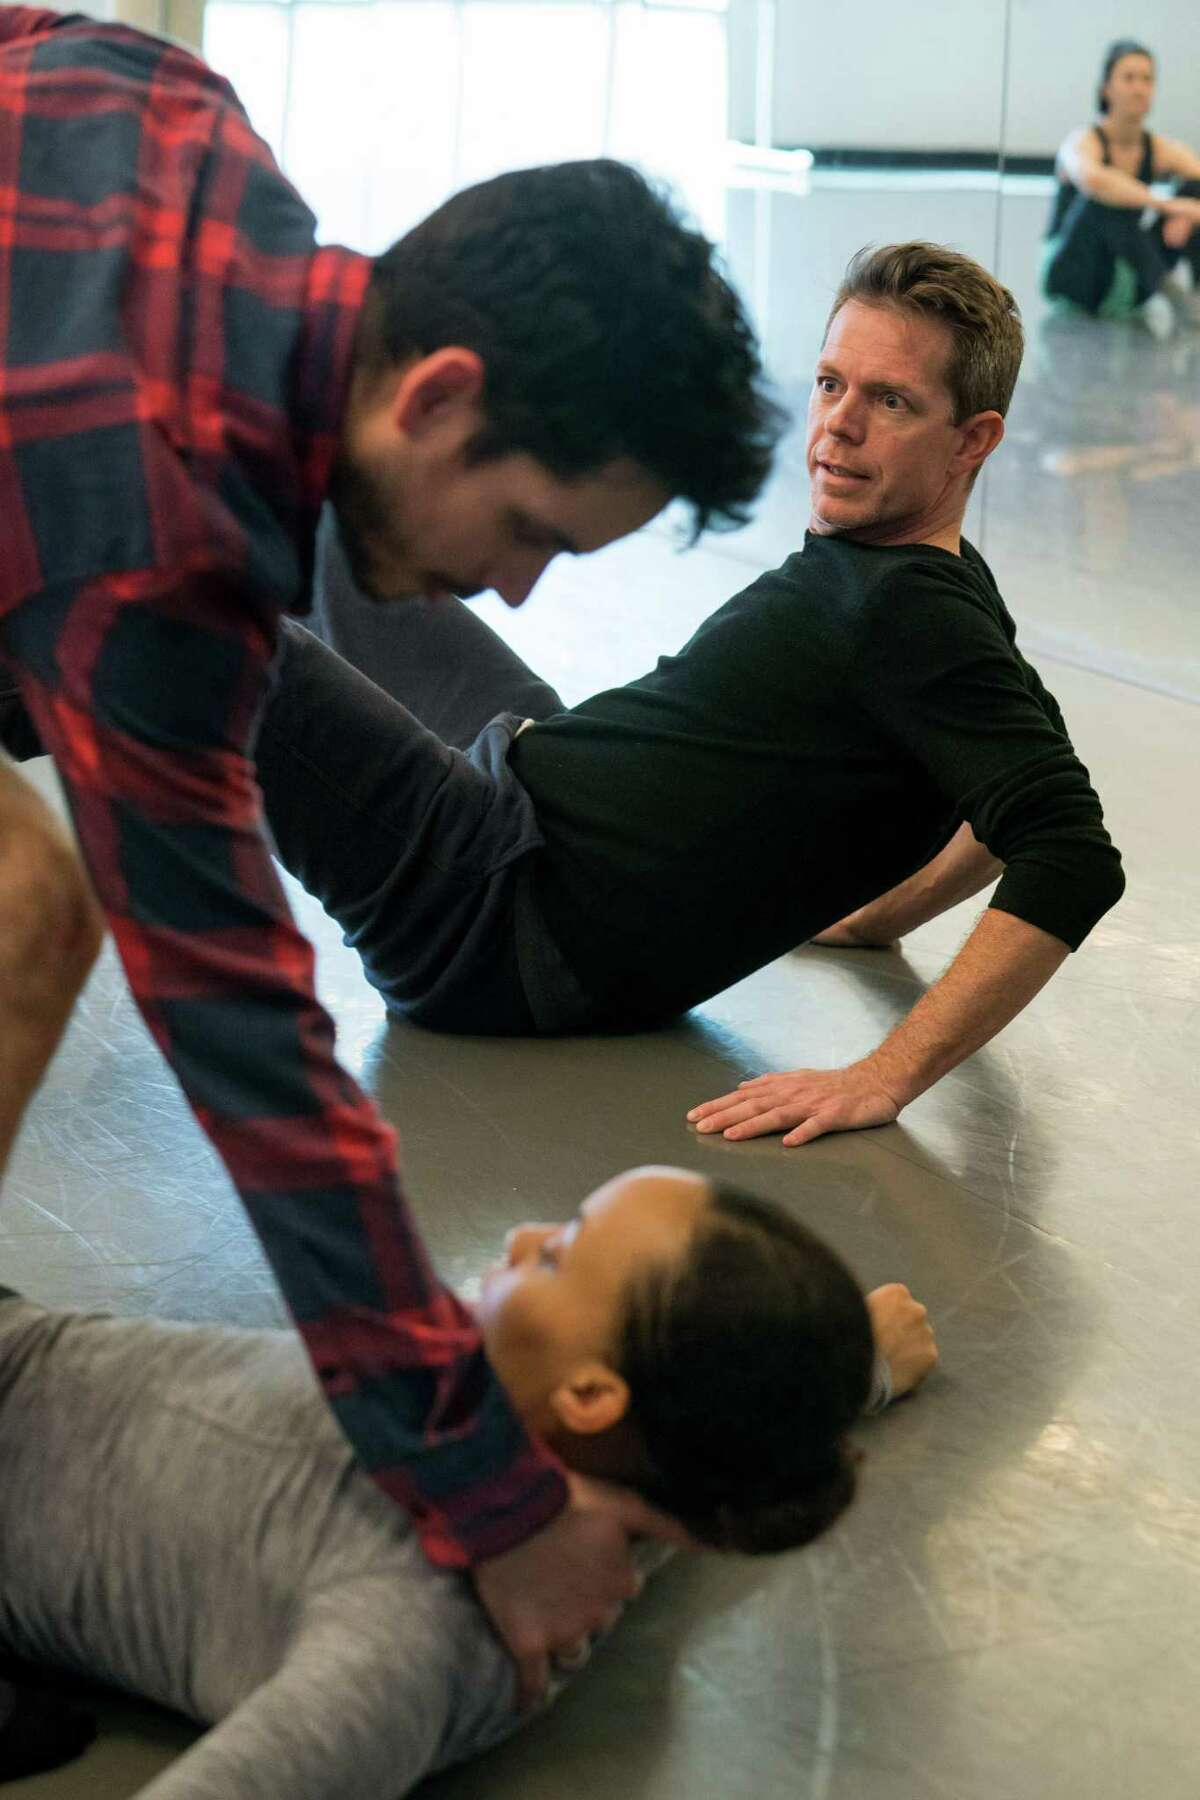 Choreographer Dominic Walsh rehearses with artists of MetDance in the company's Midtown studios, preparing for the premiere of a new 30-minute work that debuts April 13-14 at Hobby Center.